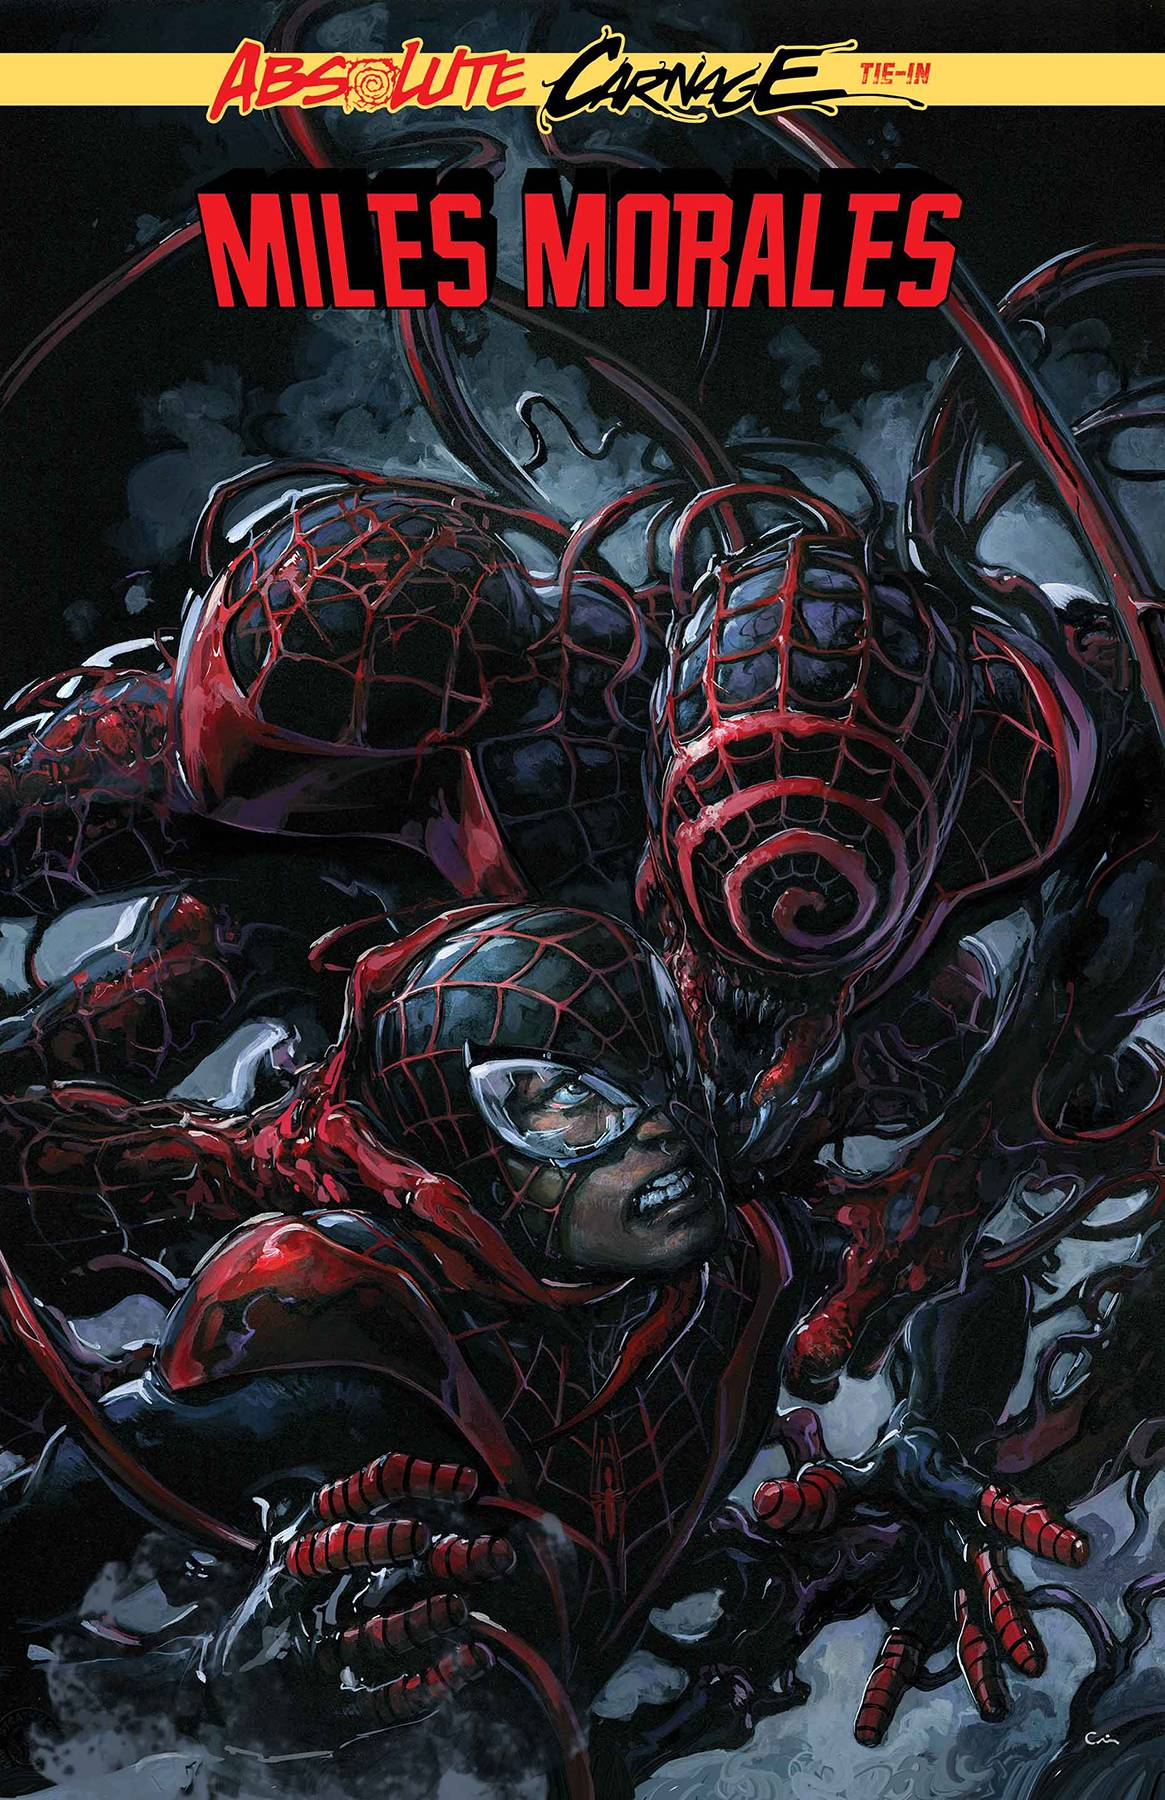 09/25/2019 ABSOLUTE CARNAGE MILES MORALES #2 (OF 3) AC